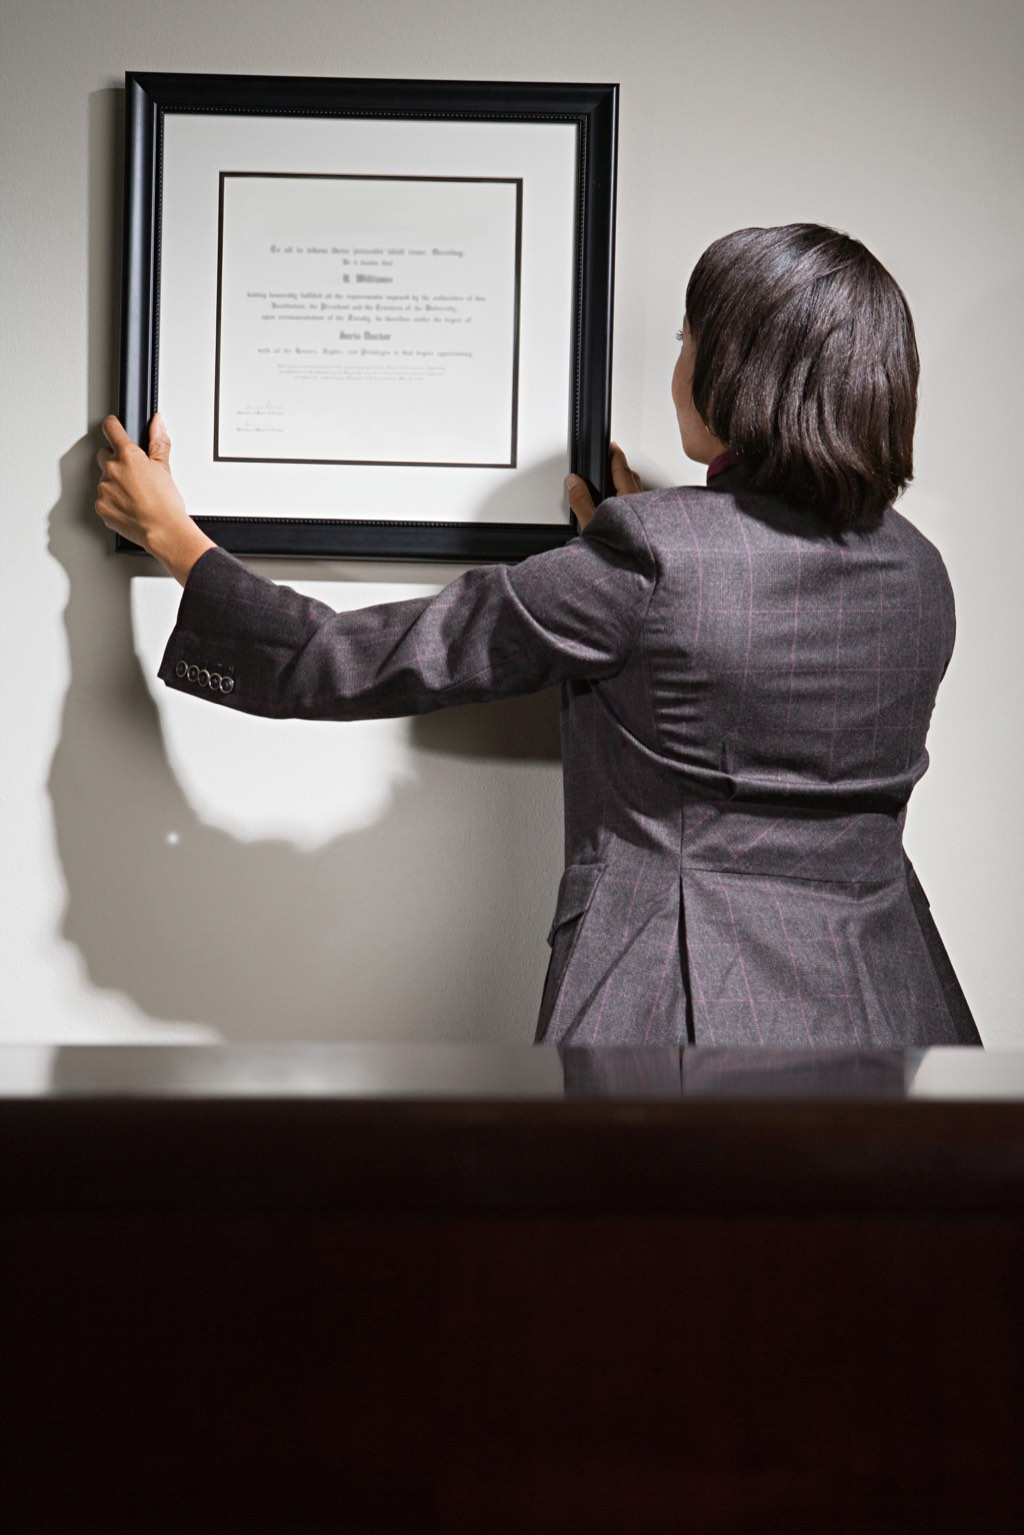 Hanging diplomas on the wall might seem outdated and redundant, but quite a few buyers will consider those dead trees significant.